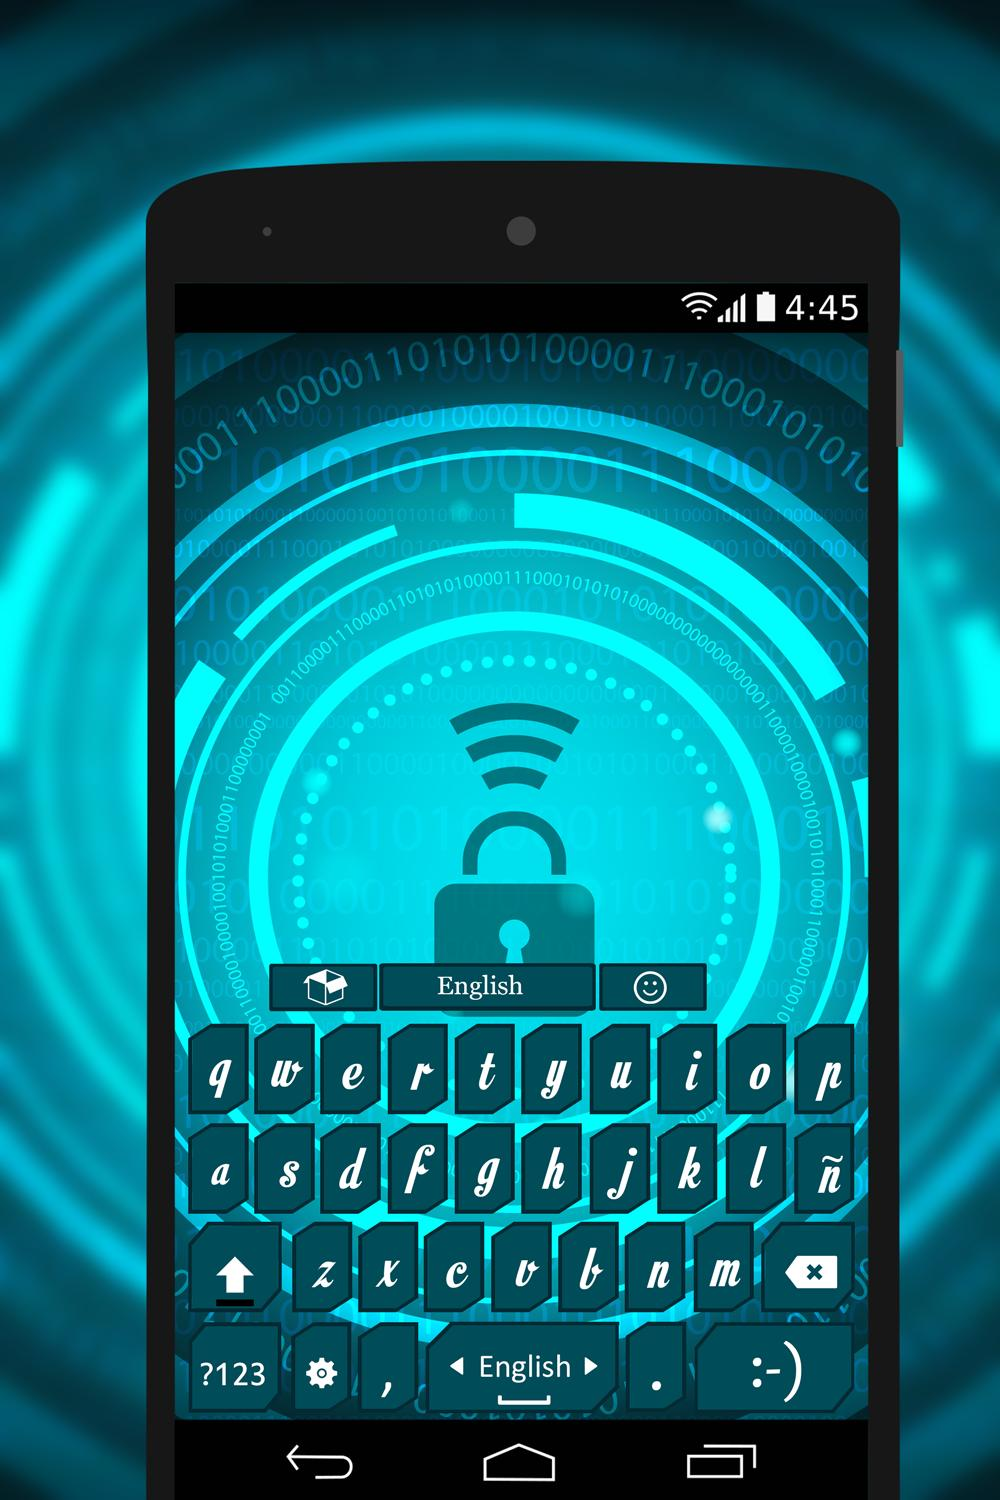 Hack Passwords - Hacker's Keyboard for Android - APK Download